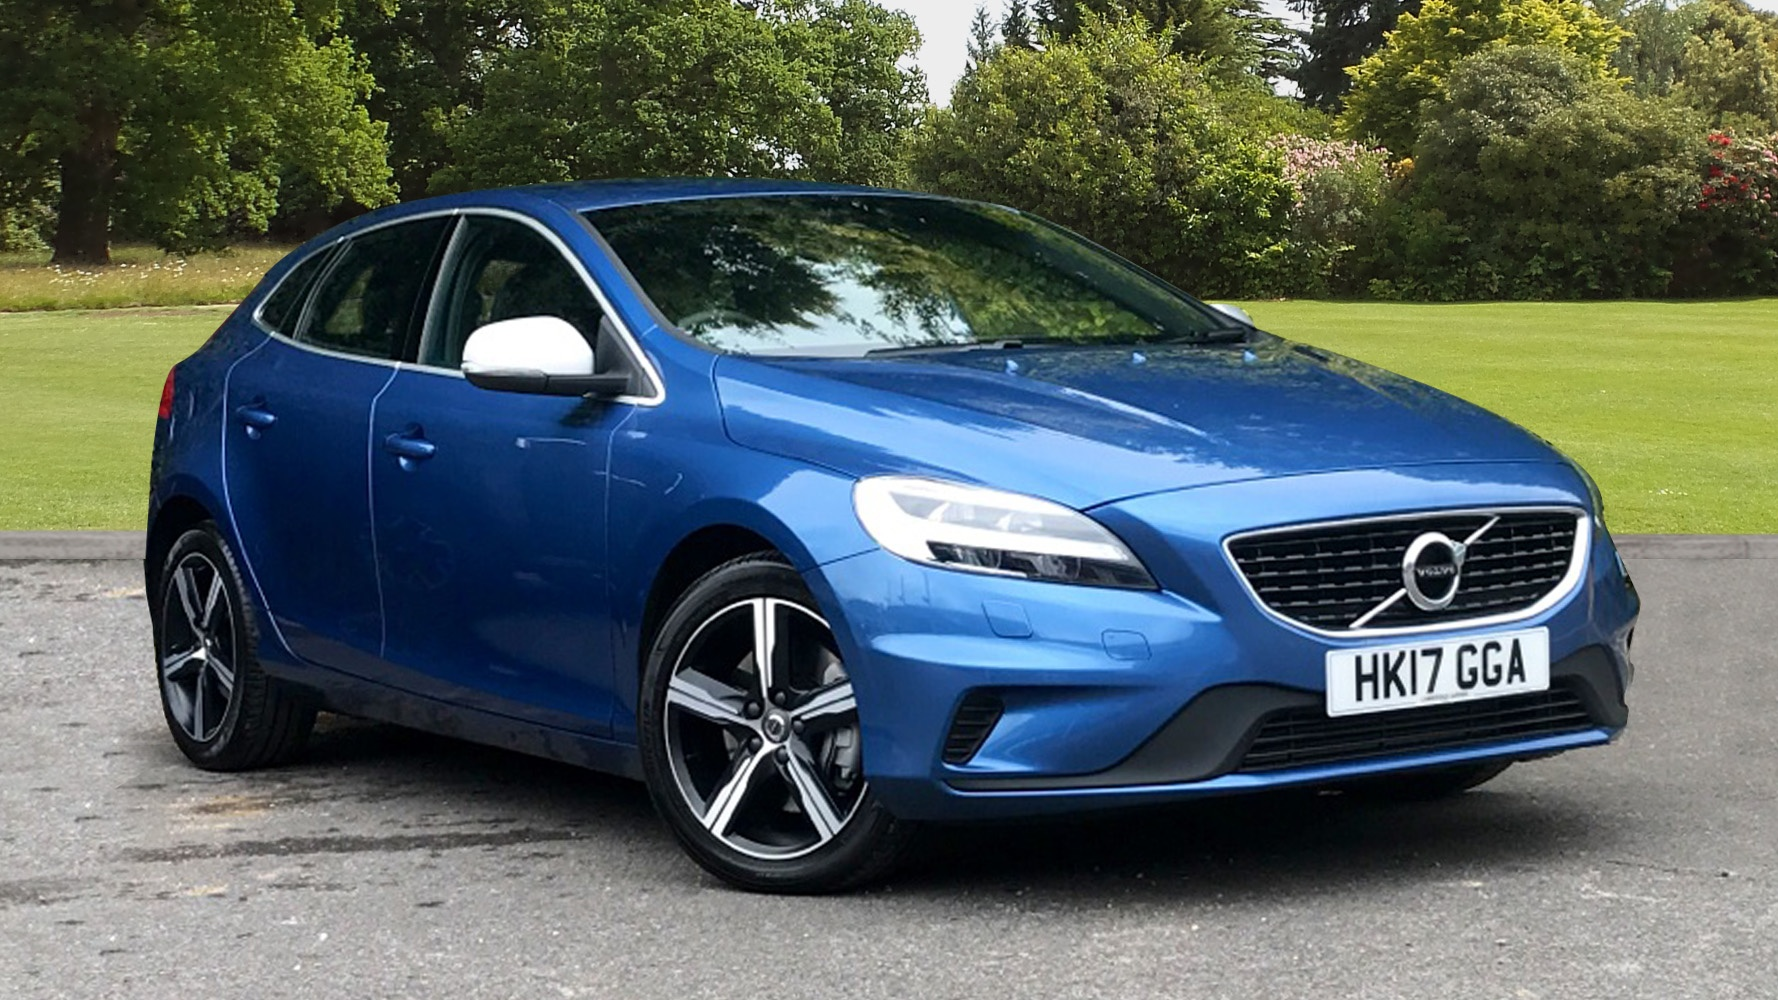 volvo v40 t2 122 r design automatic used vehicle by cambridge garage havant havant. Black Bedroom Furniture Sets. Home Design Ideas